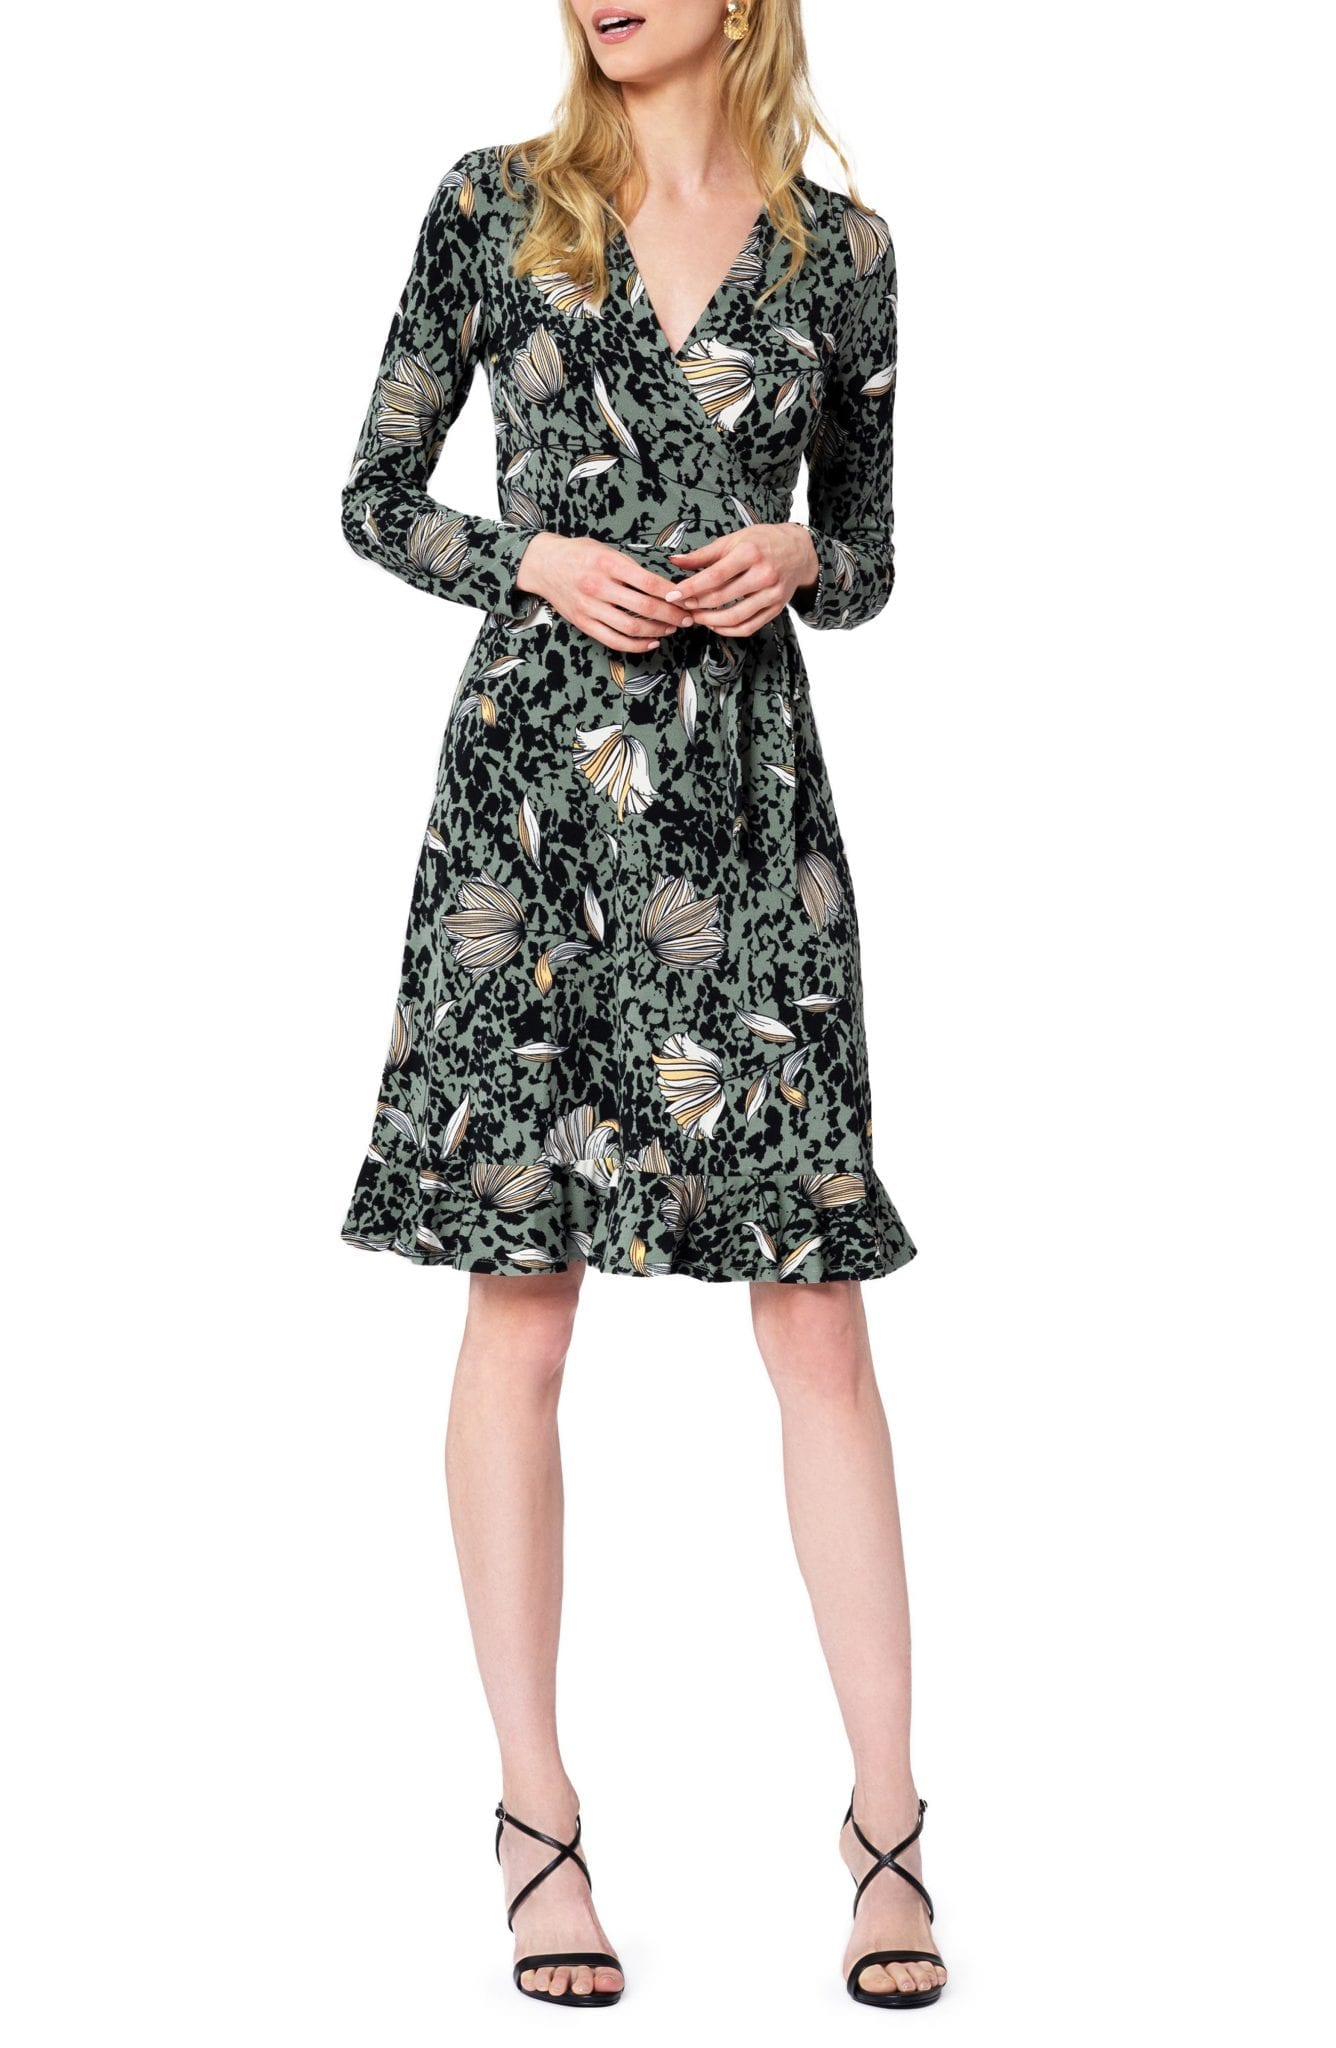 LEOTA Floral Long Sleeve Faux Wrap Dress